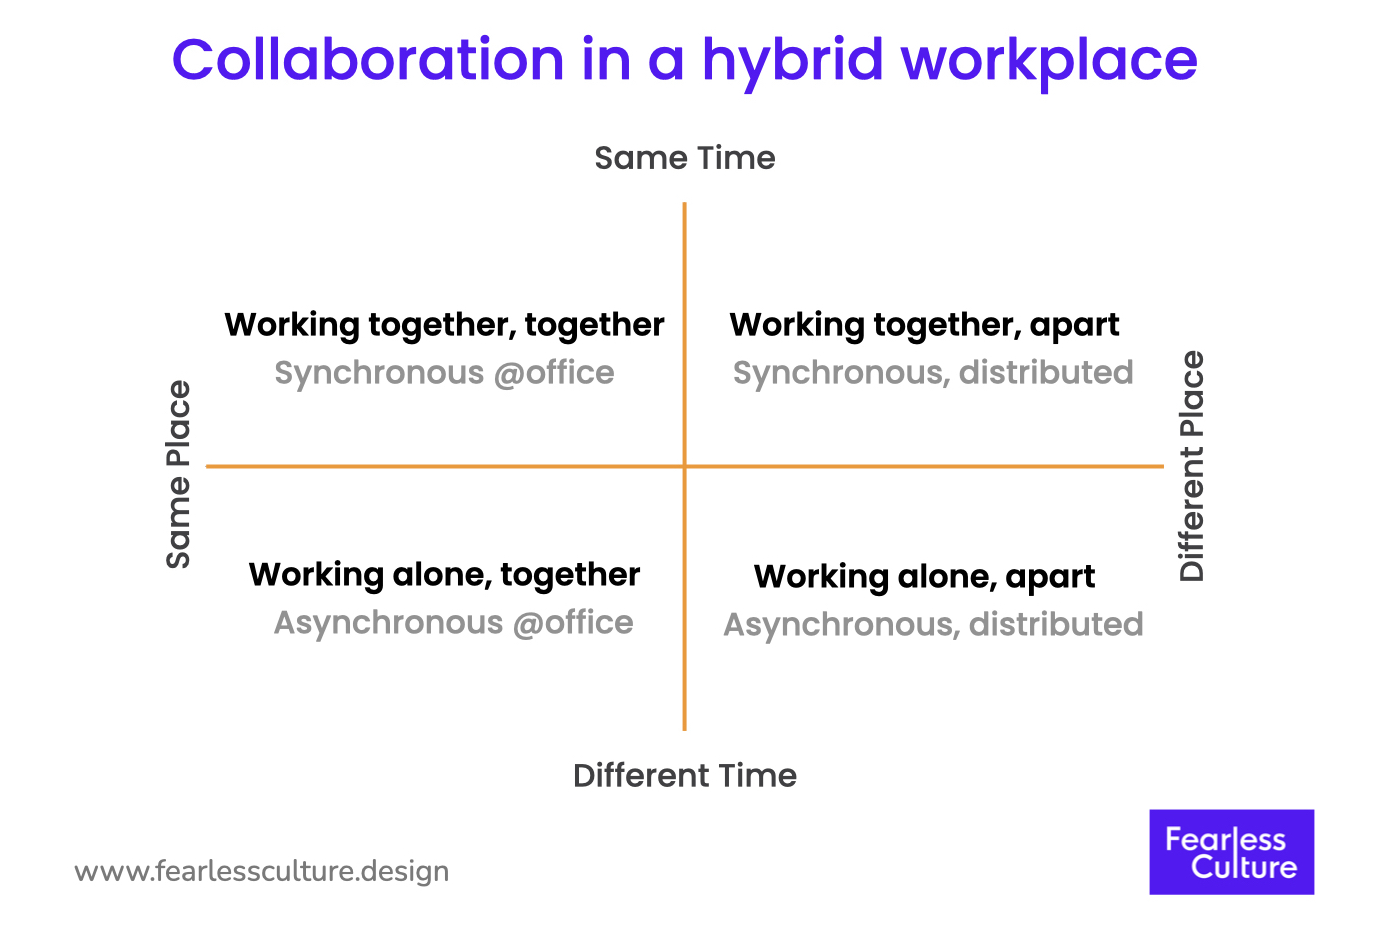 collaboration in a hybrid workplace matrix asynchronous synchronous same place same time different place different time asynchronous synchronous